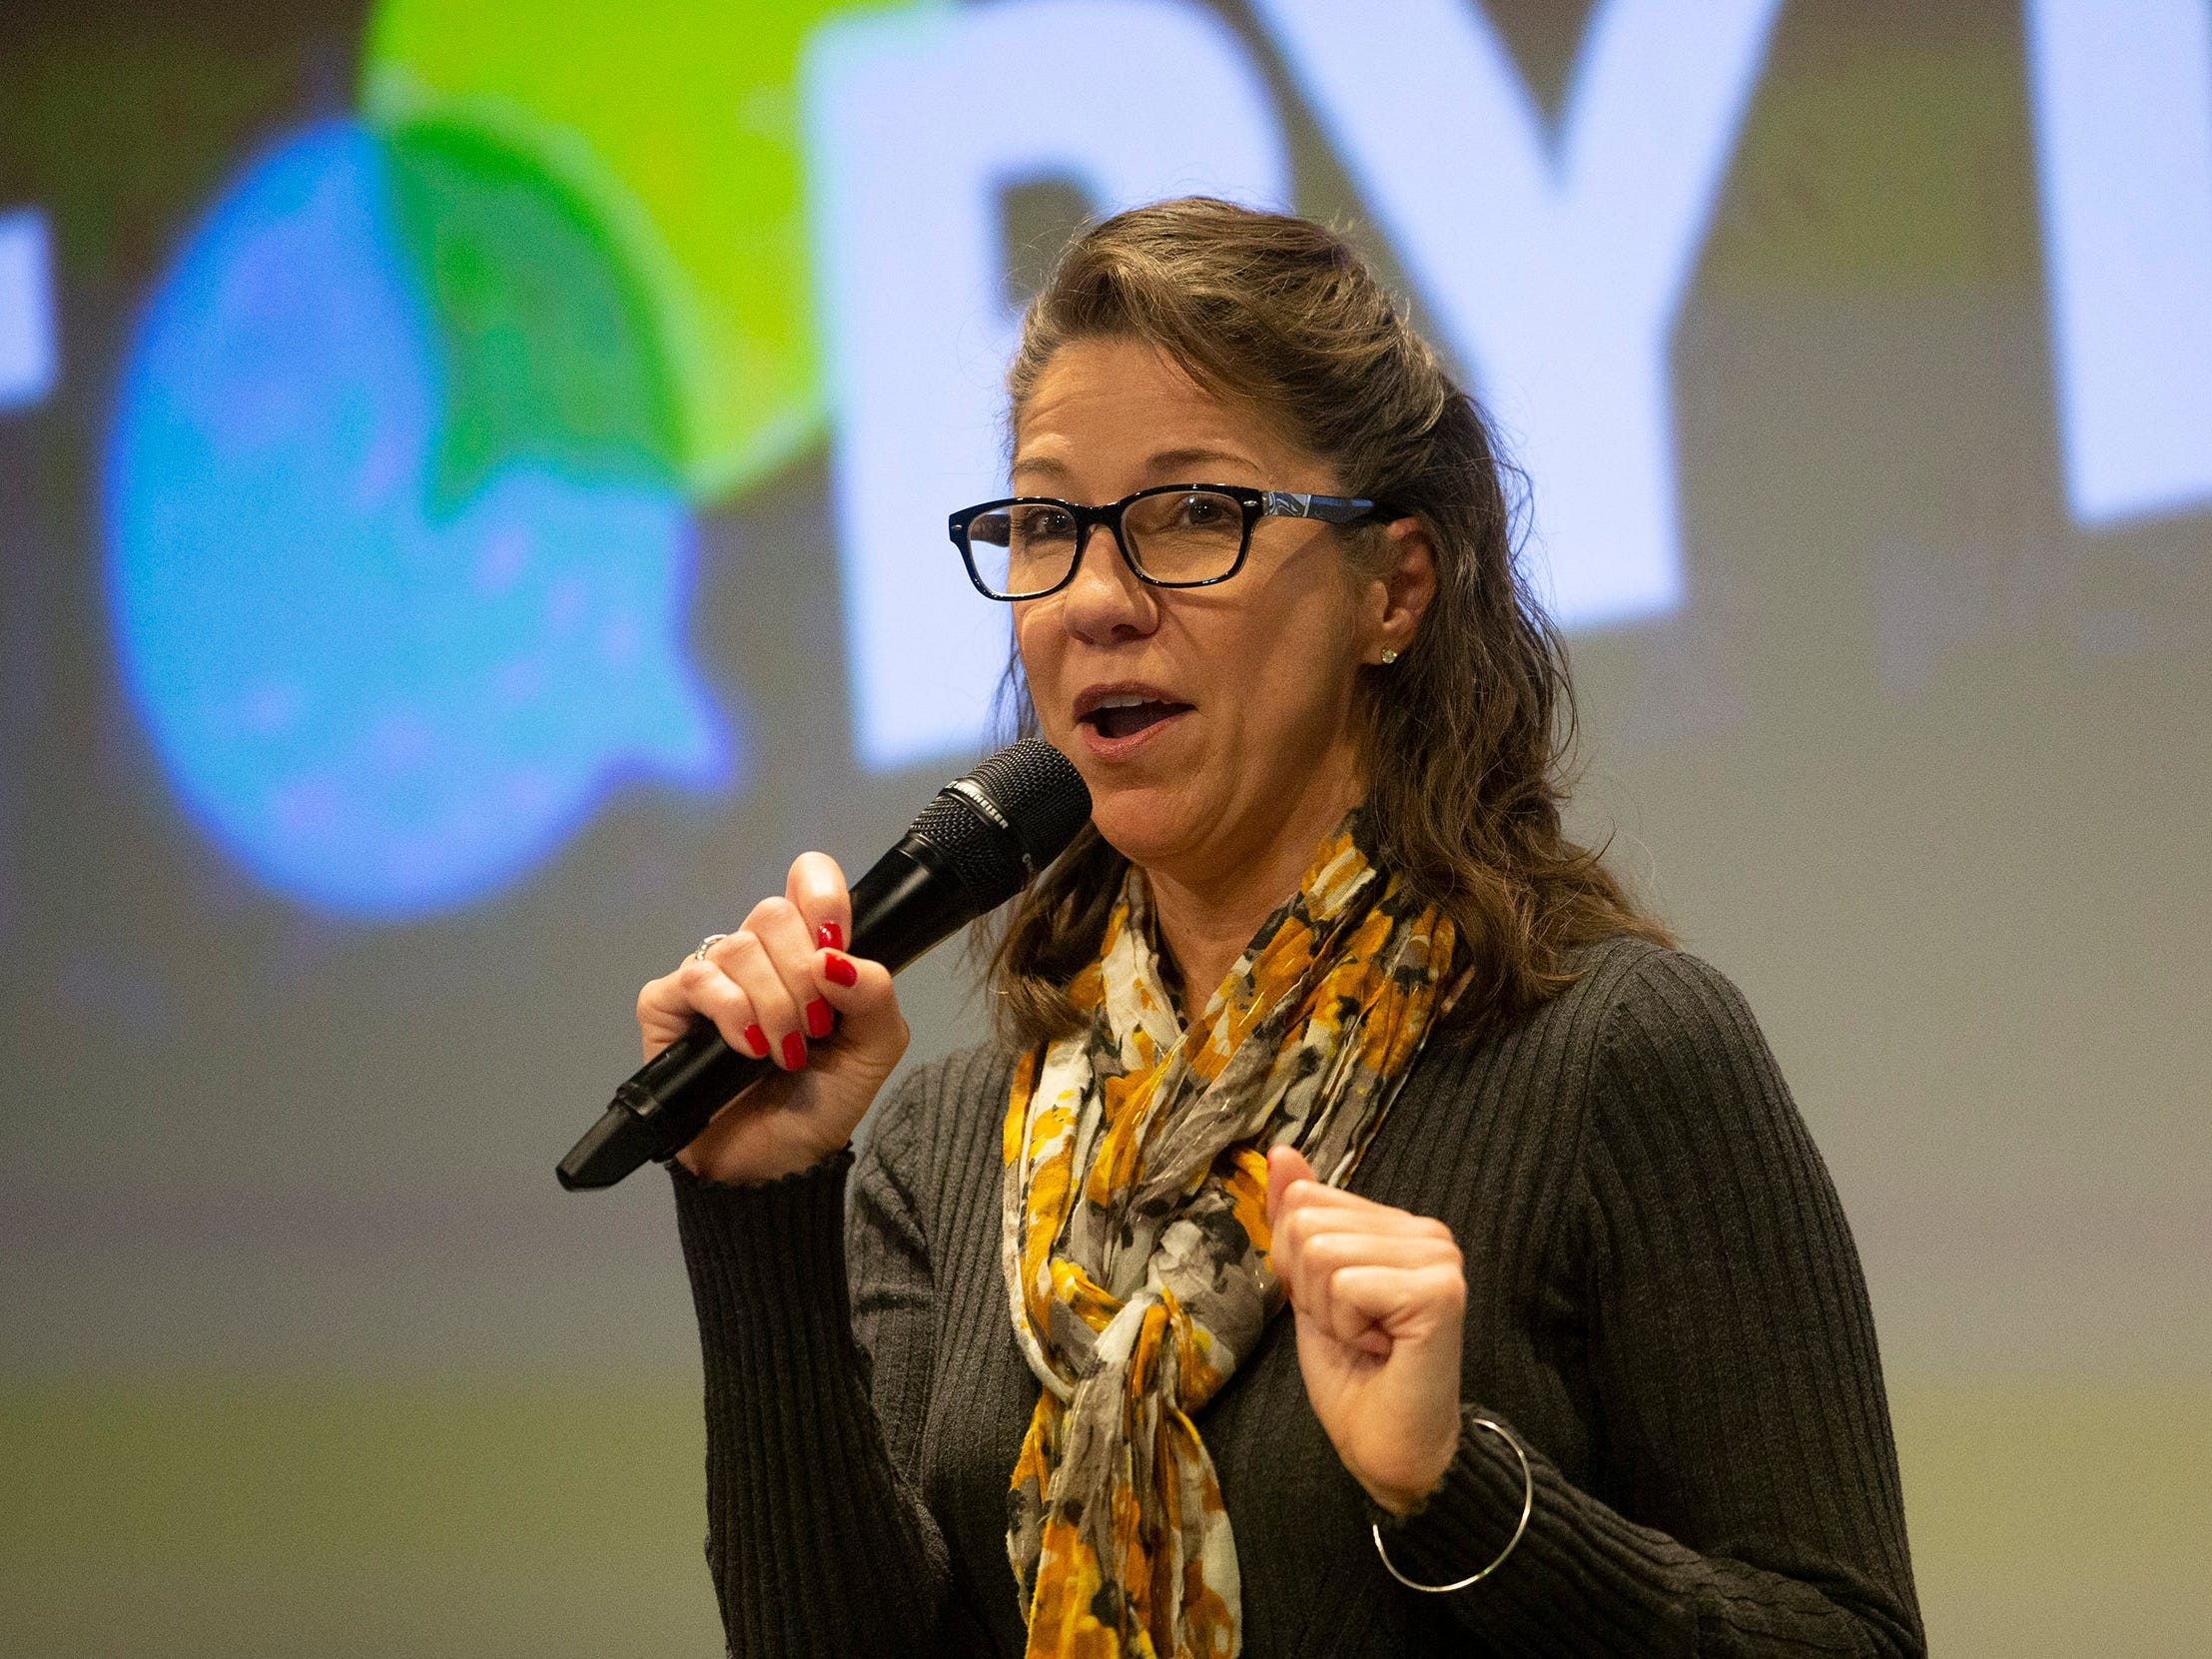 Michelle A Mulkerin tells her story.  Speakers and crowds alike enjoy the latest version of Storytellers in Asbury Park on February 27, 2019, this night's subject was starting over.